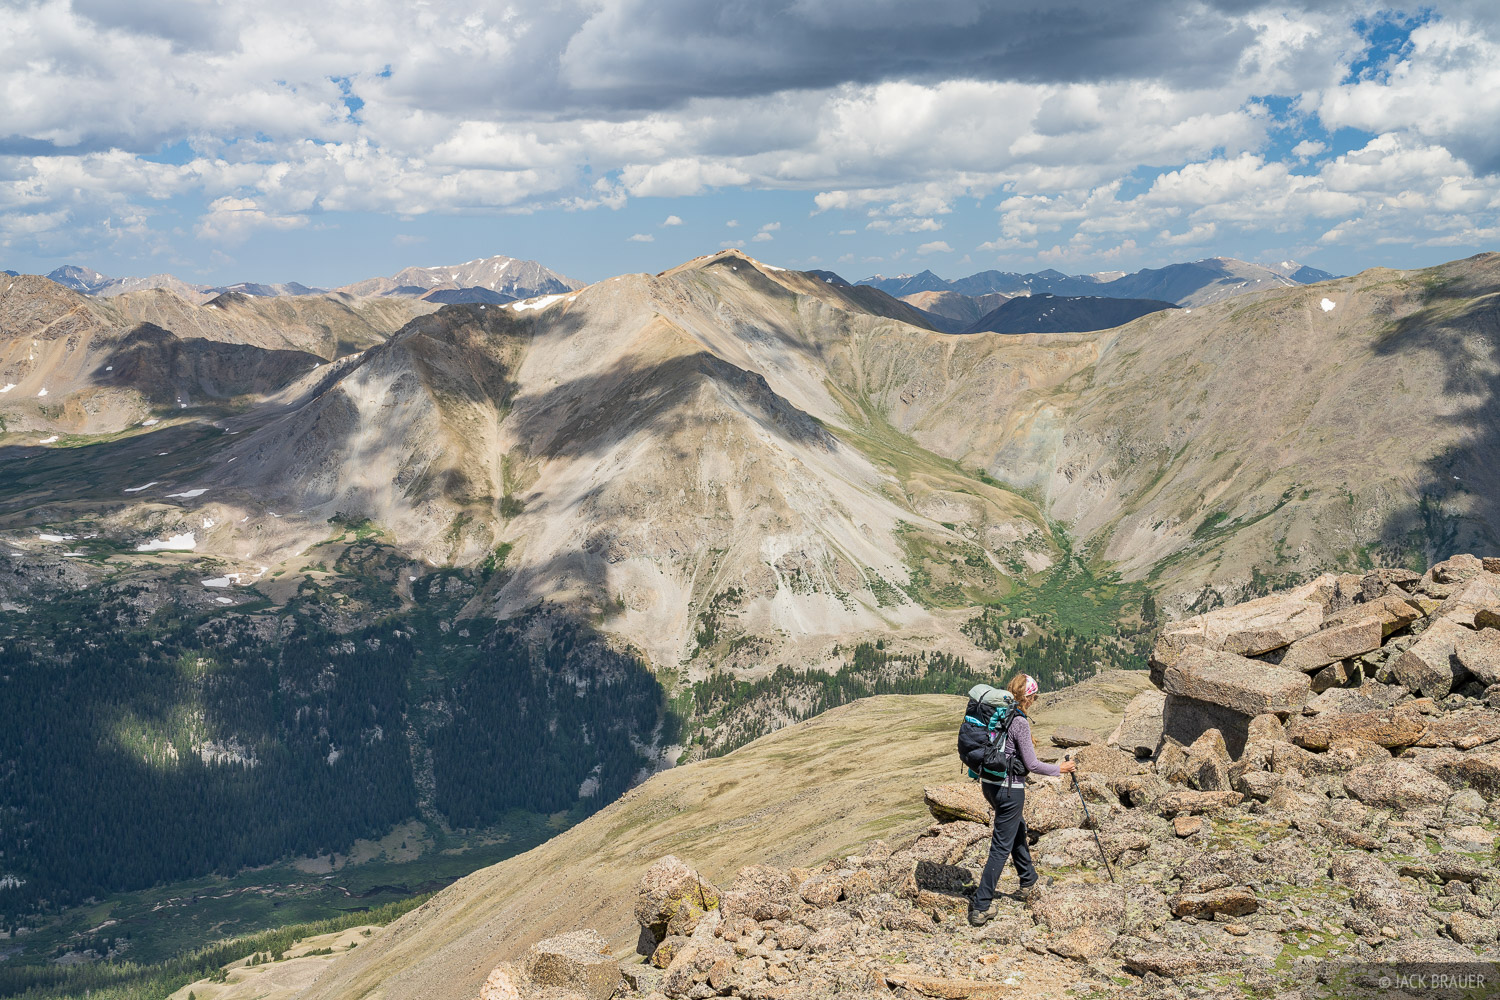 Collegiate Peaks Wilderness, Colorado, Mount Belford, Mount Harvard, Sawatch Range, hiking, 14ers, photo